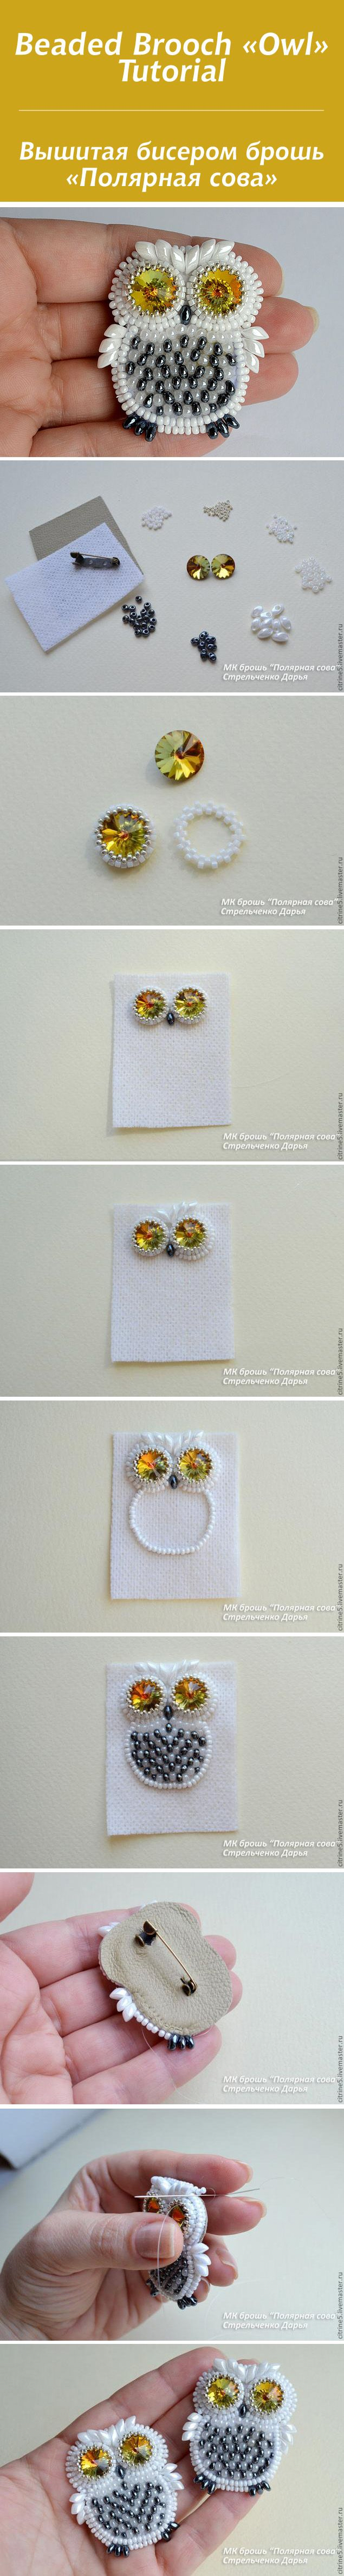 "Beaded Brooch ""Owl"" Tutorial #bead #tutorial"